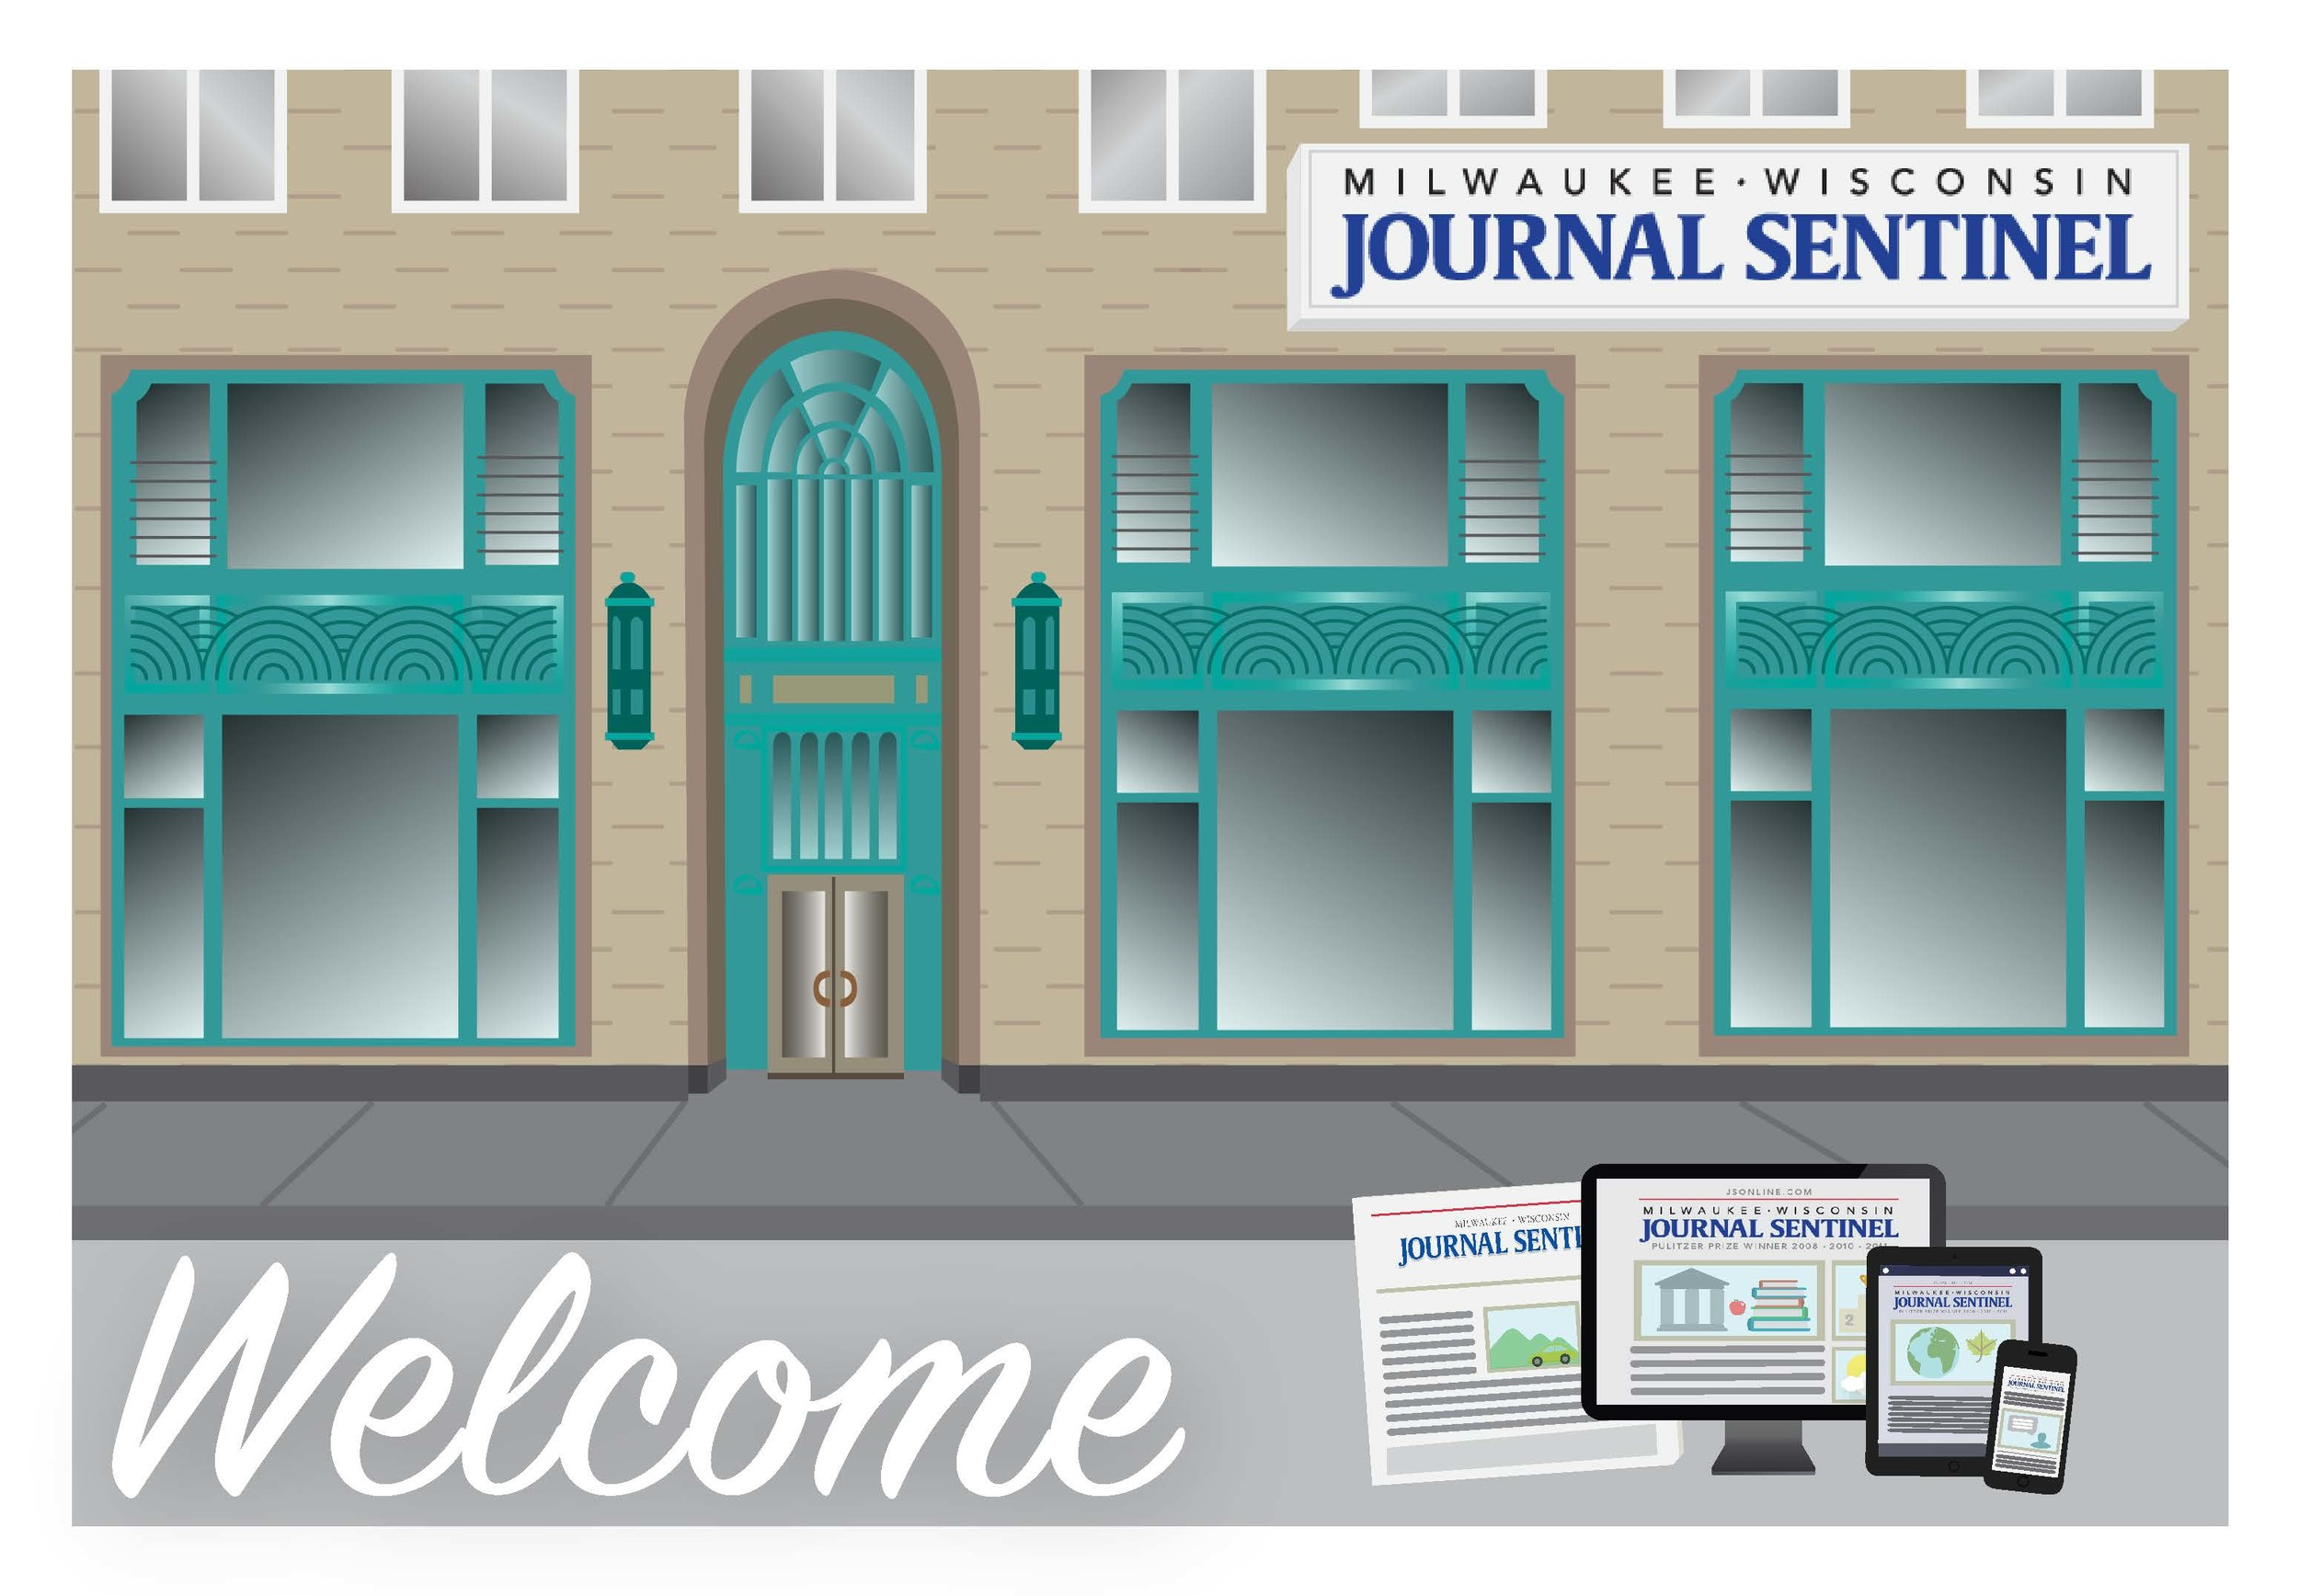 Illustrated welcome postcard for the Journal Sentinel